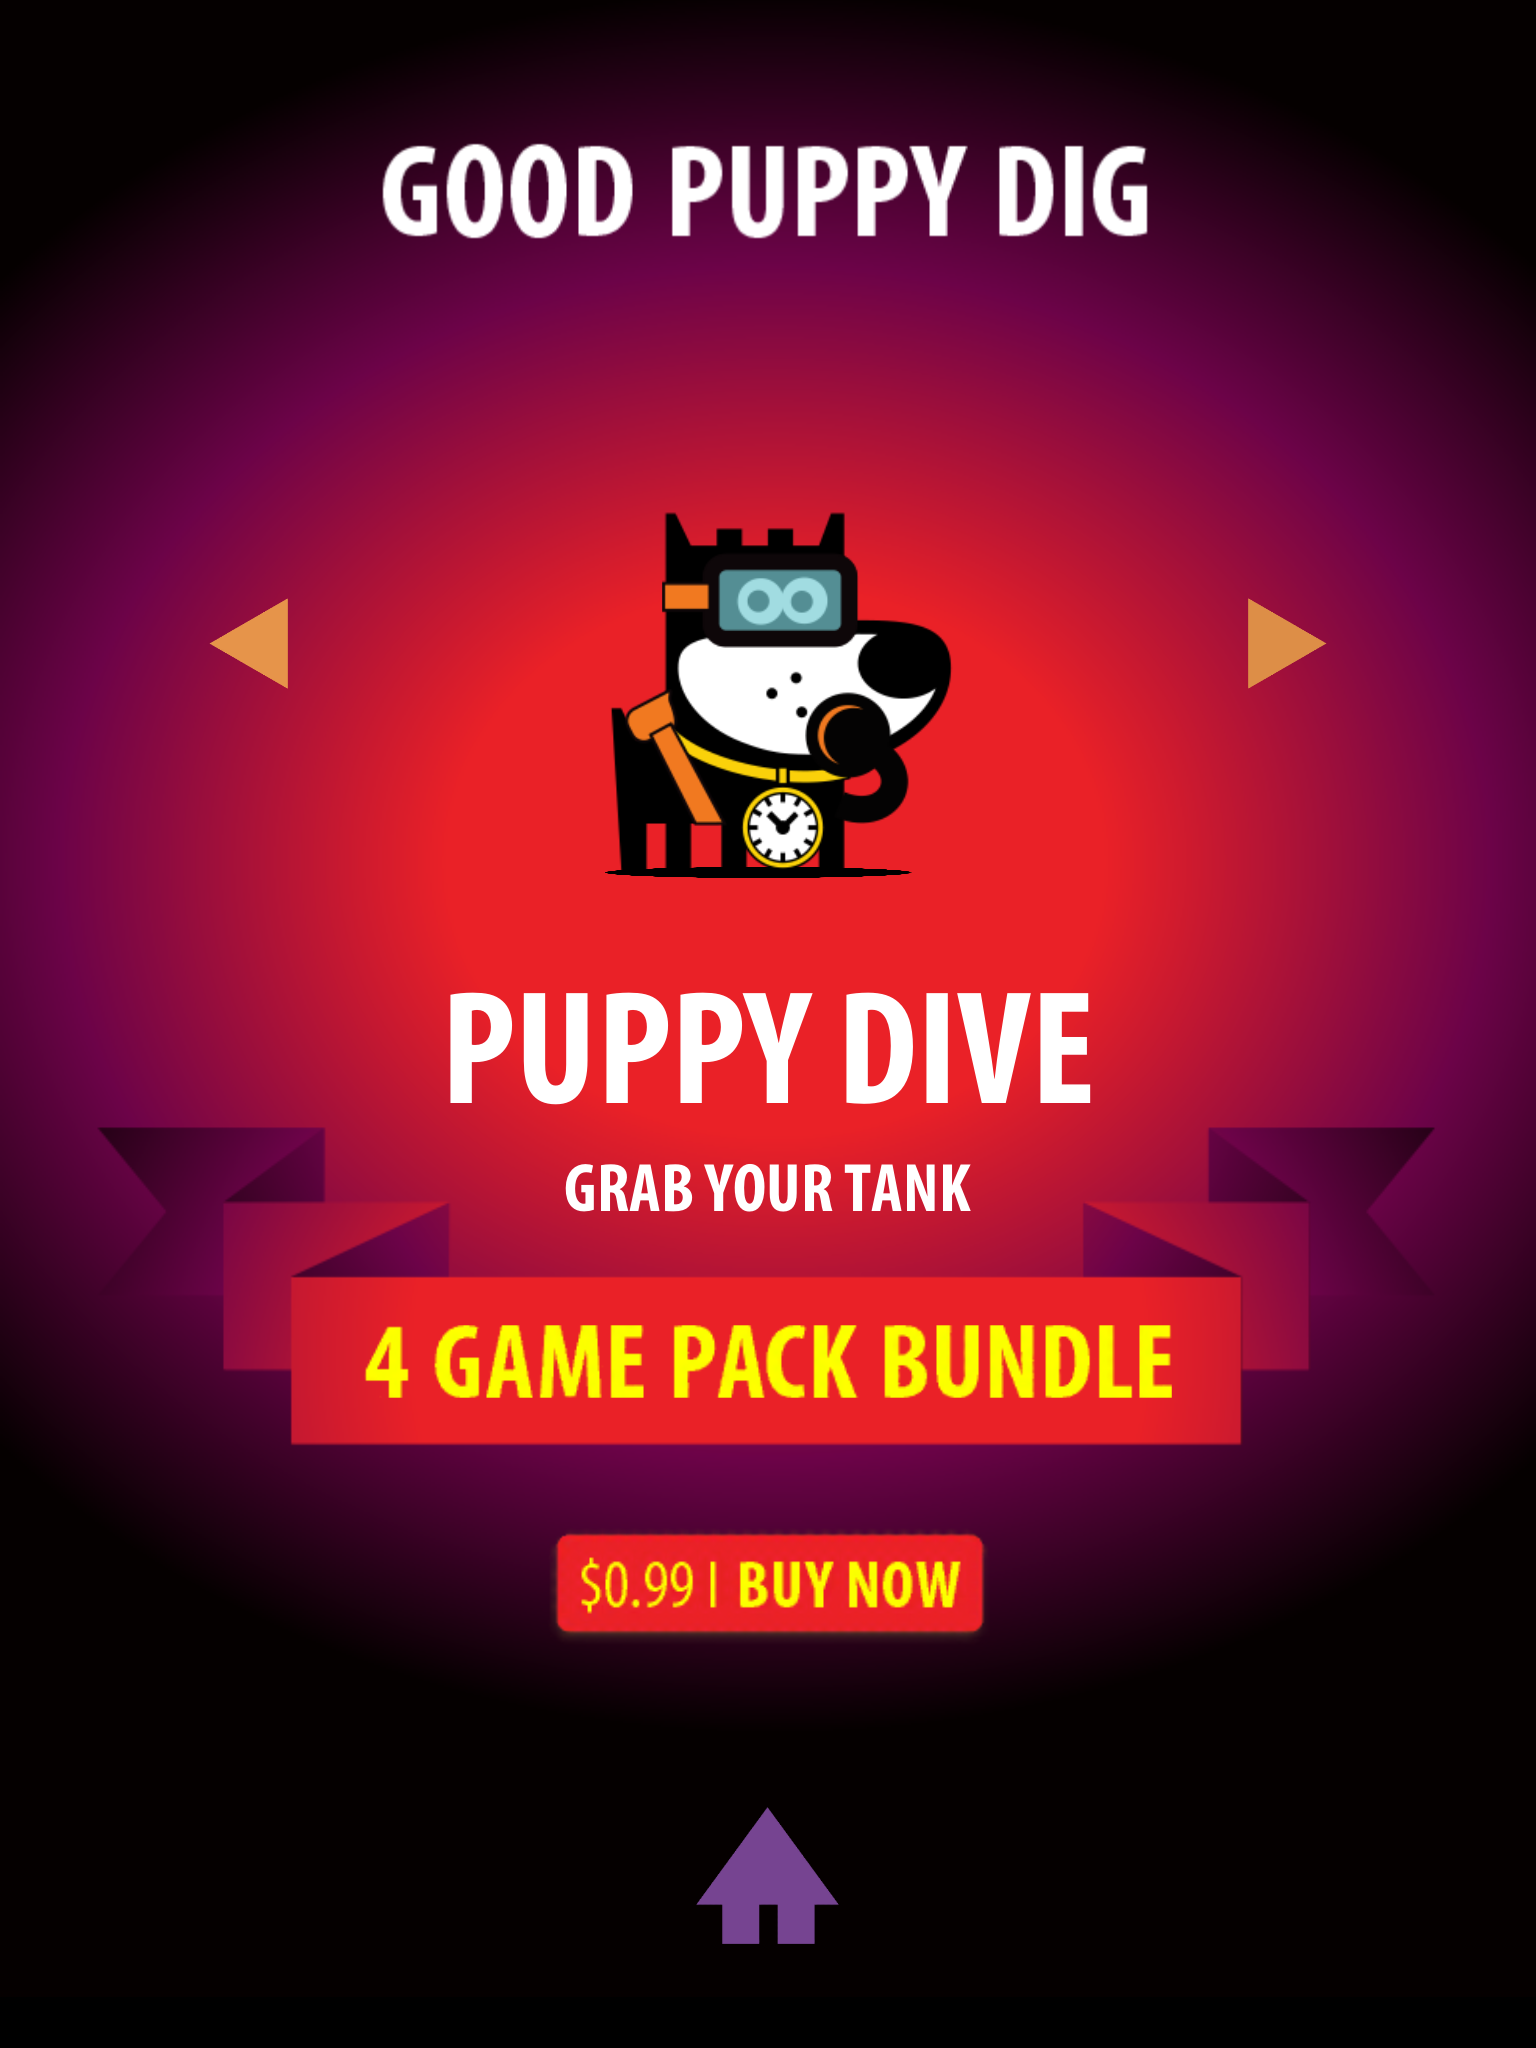 GOOD-PUPPY-DIG-Infinite-Runner-Fast-Retro-Arcade-Game-8.png